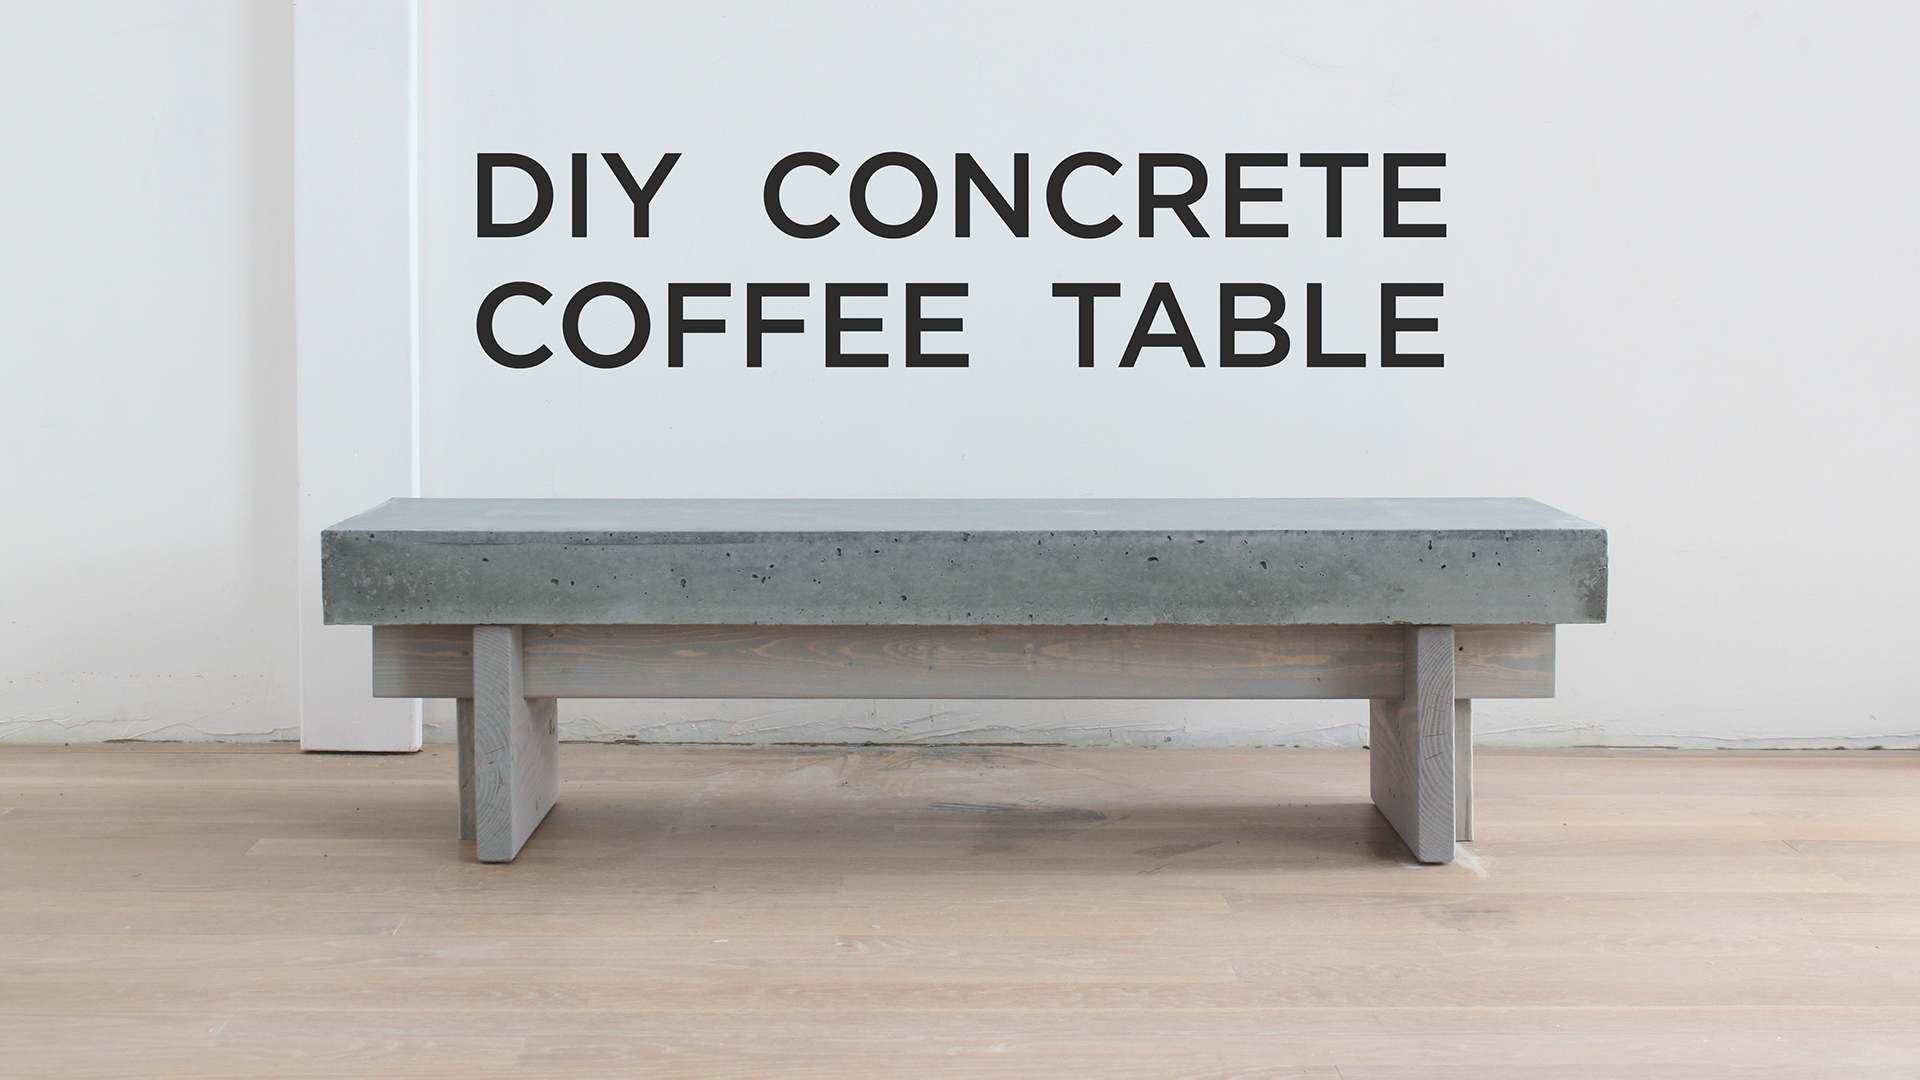 Diy Concrete Coffee Table Ryobi Nation Projects